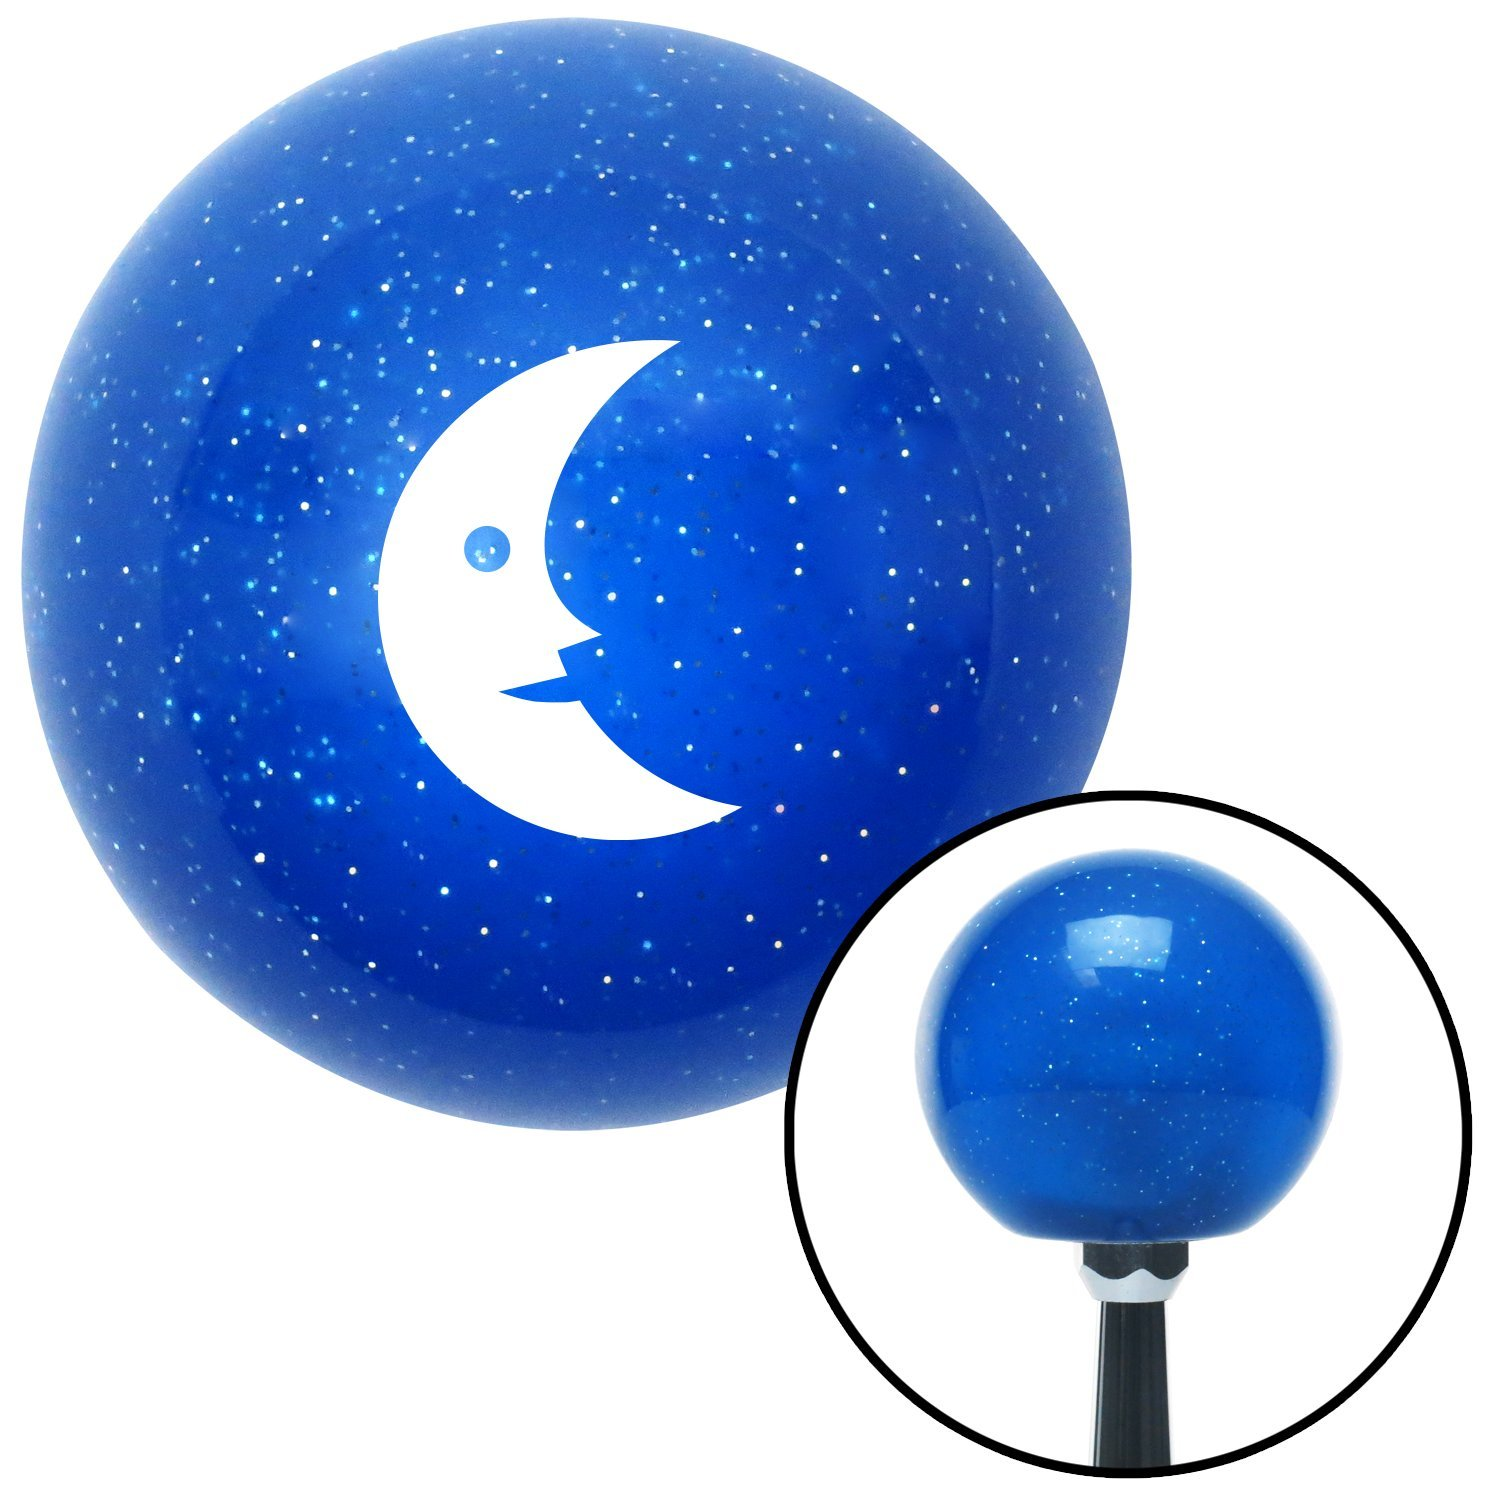 American Shifter 24848 Blue Metal Flake Shift Knob White Crescent Moon